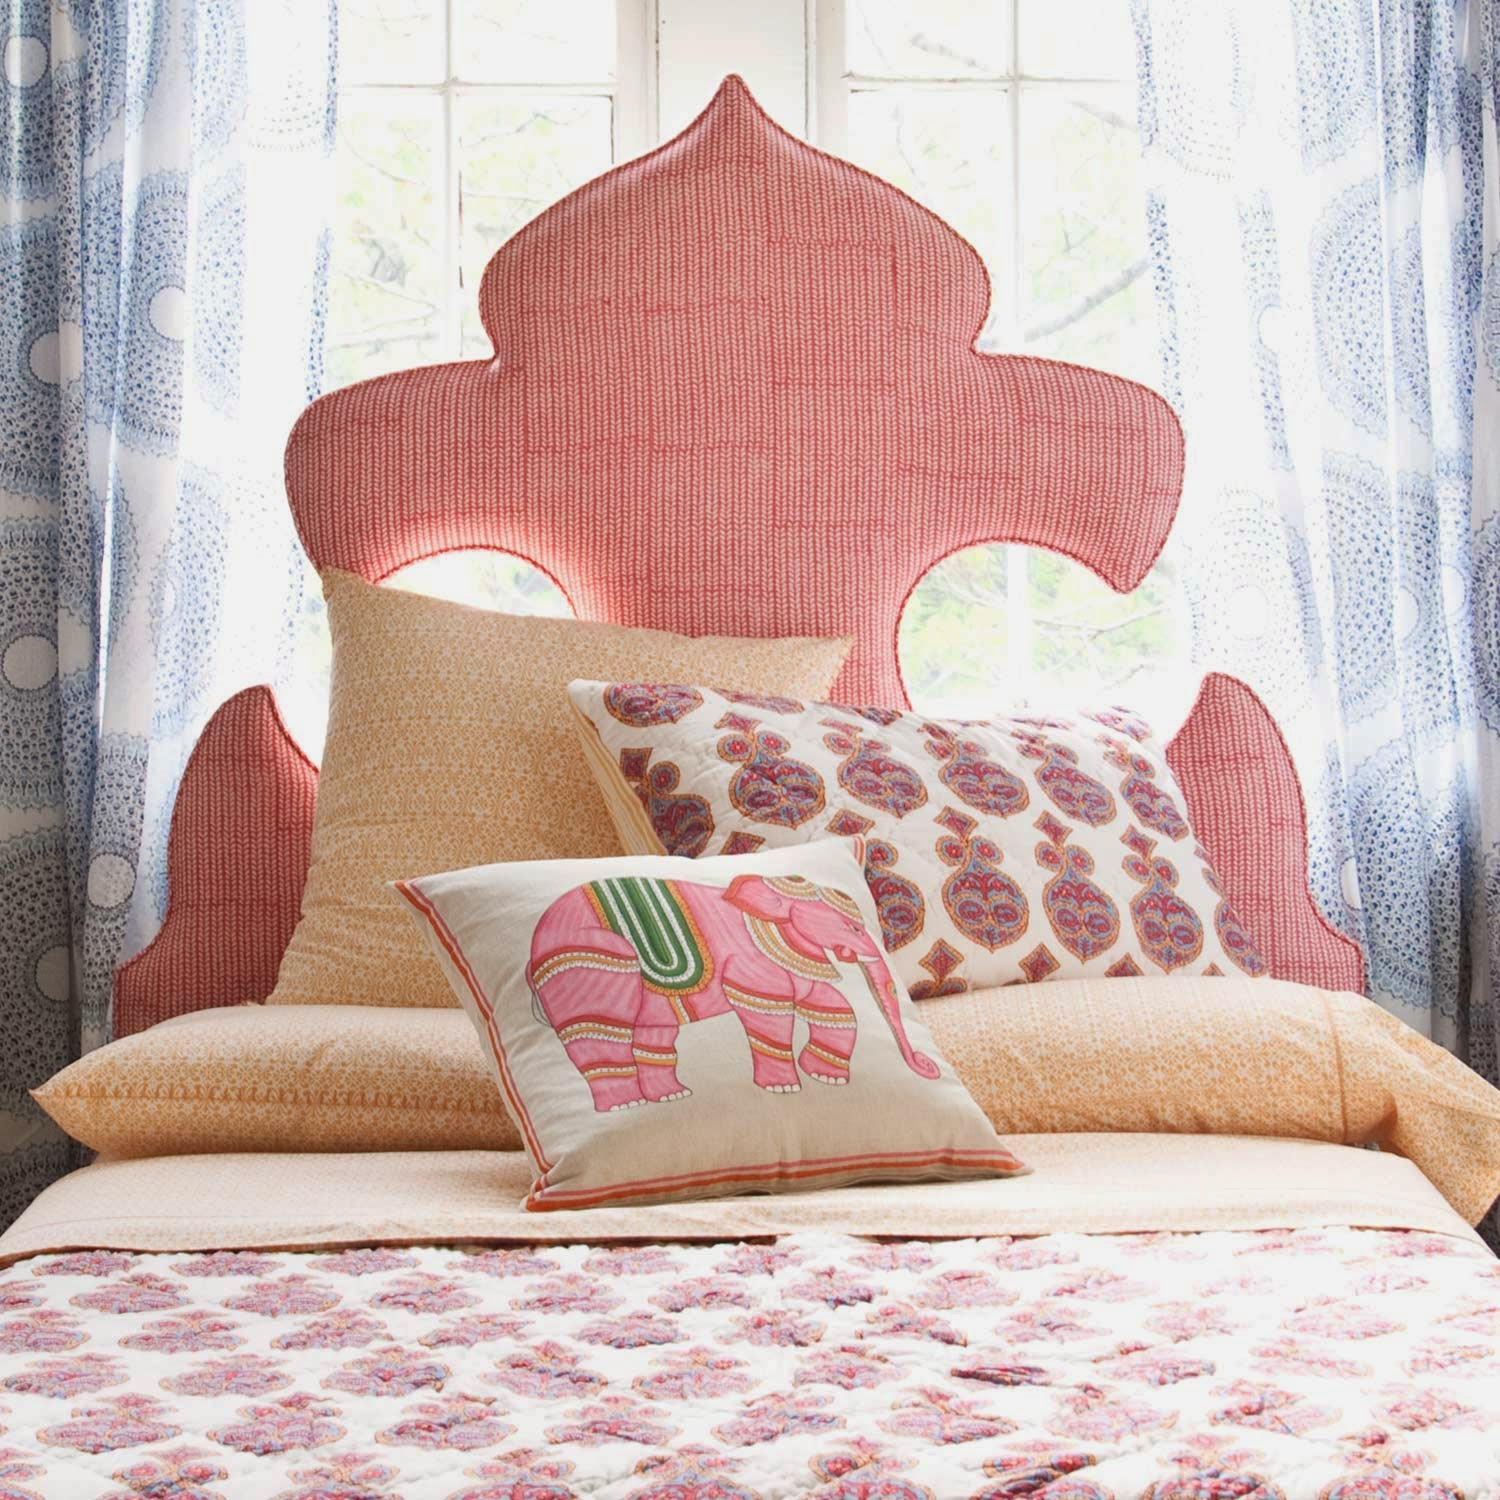 Hildreth's Home Goods: Simple Ways To Decorate Your Bedroom